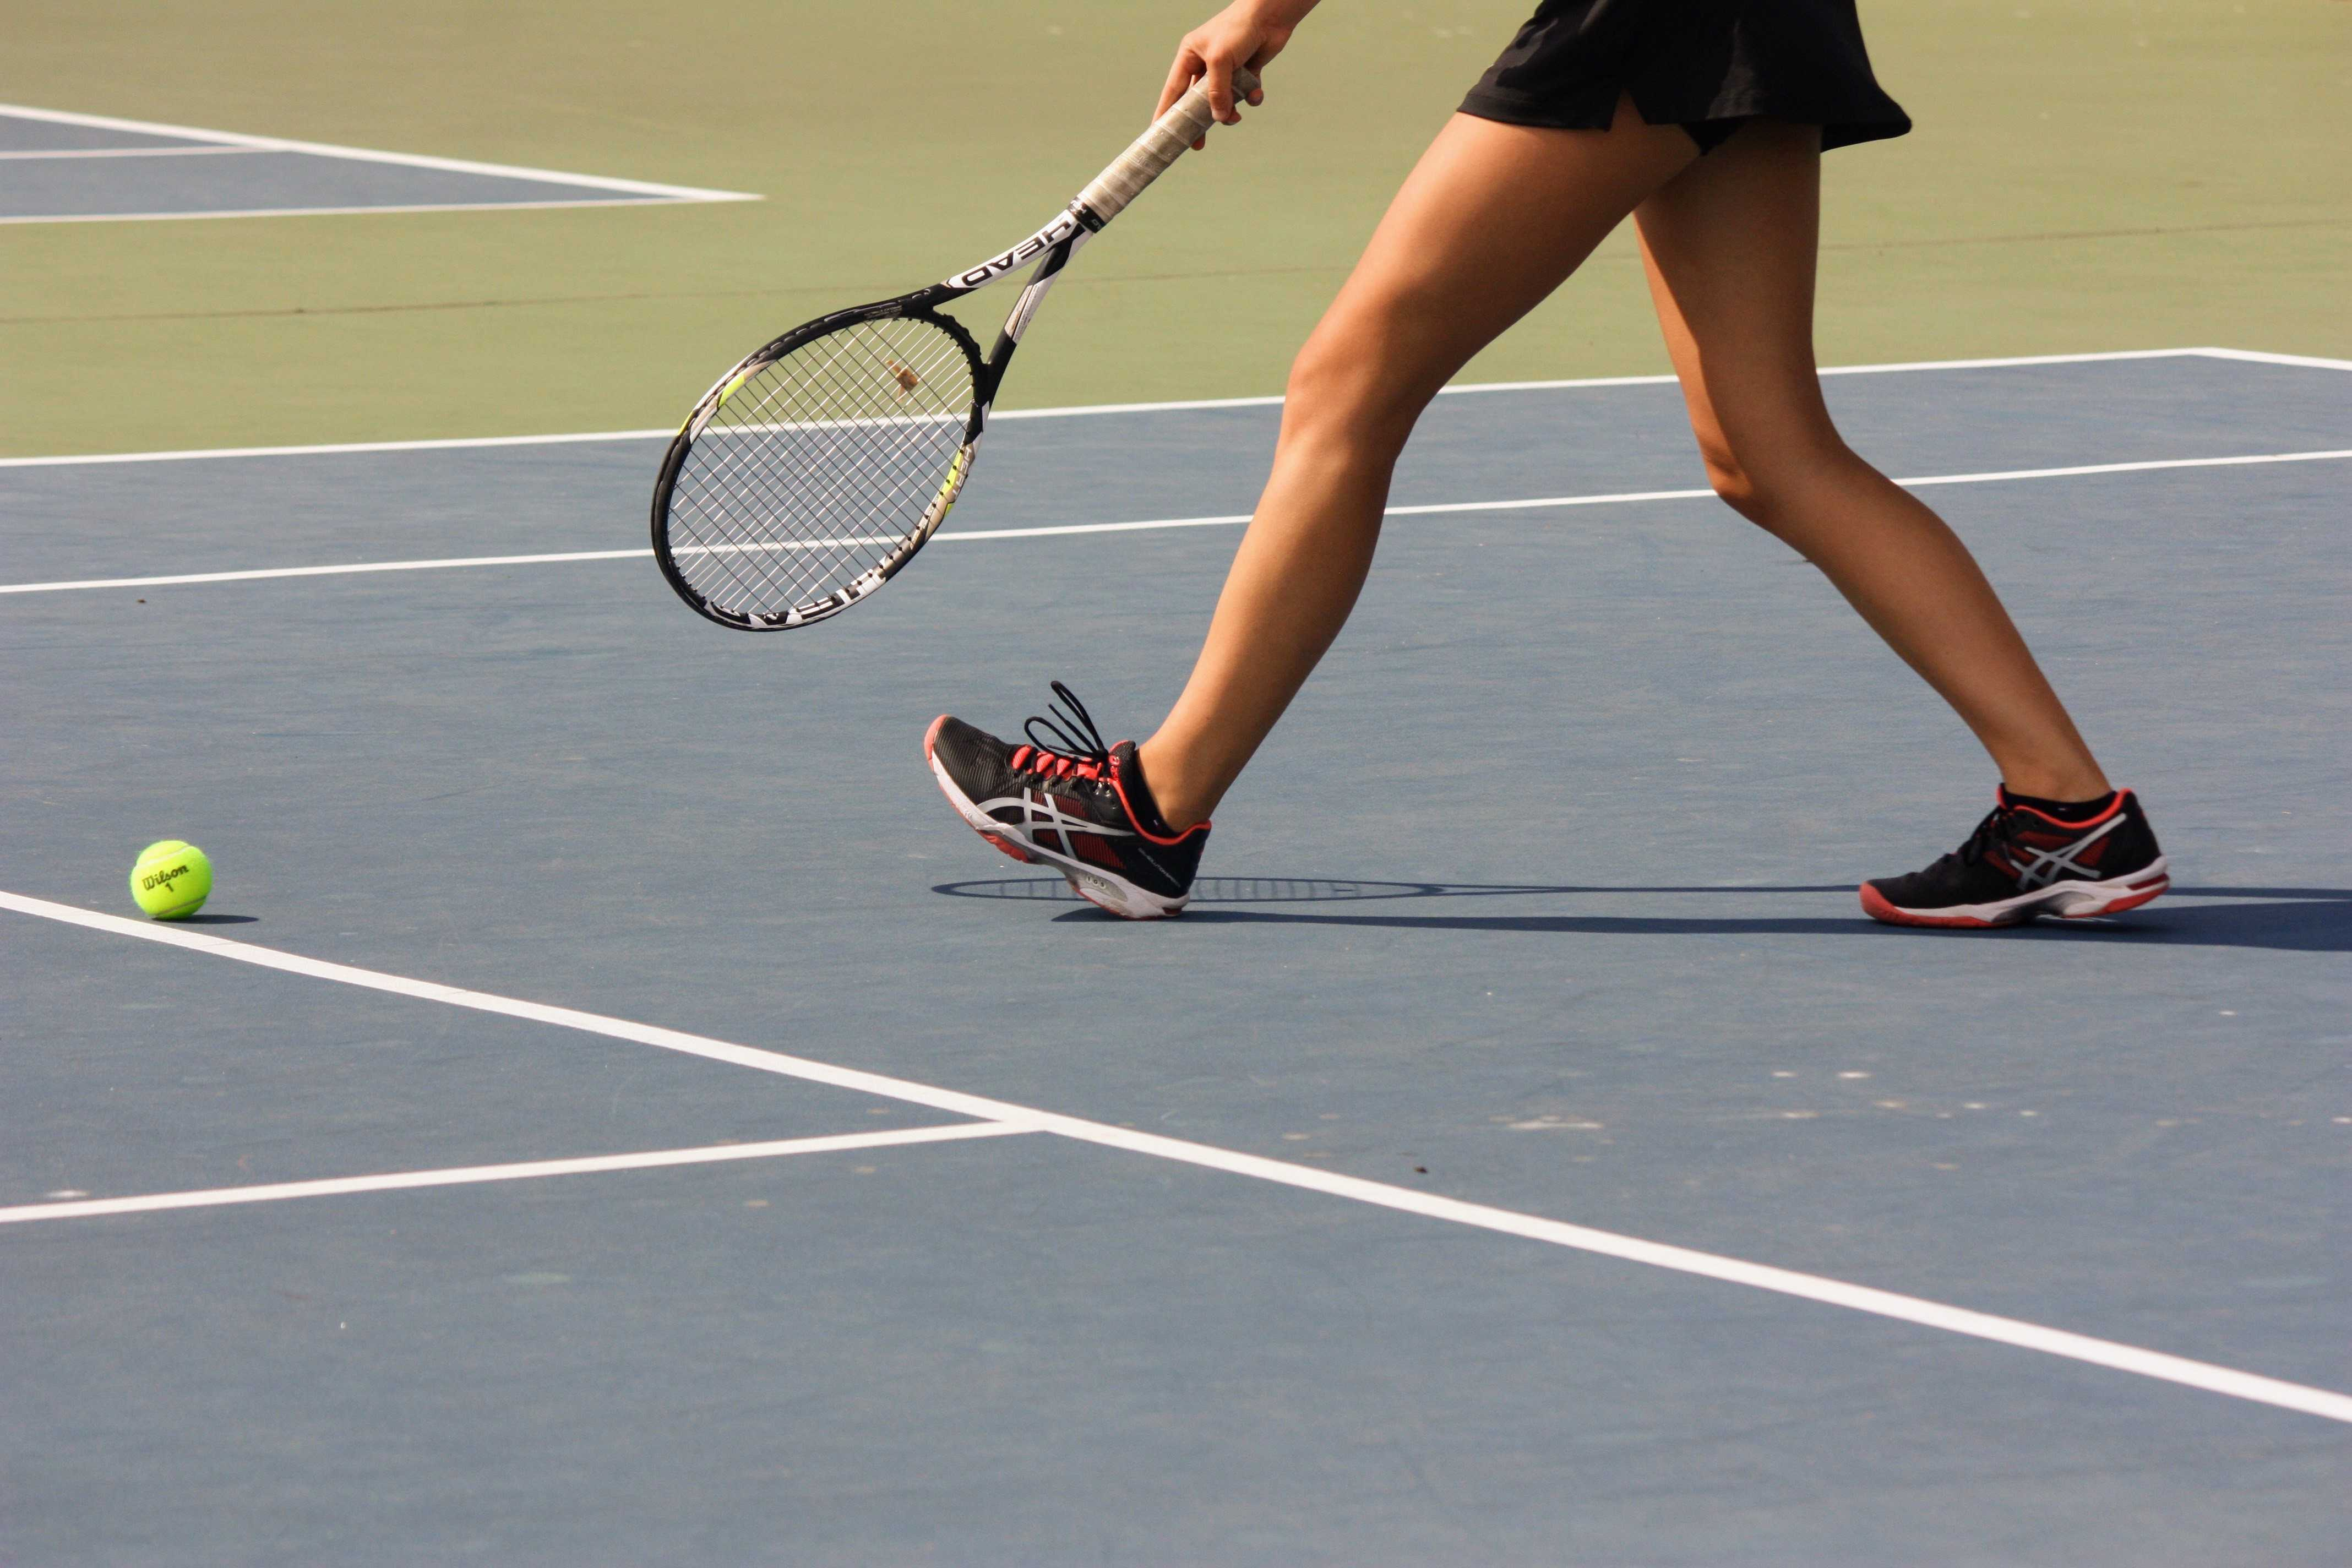 Girls' tennis overwhelms Santa Paula in first home match, 15-3